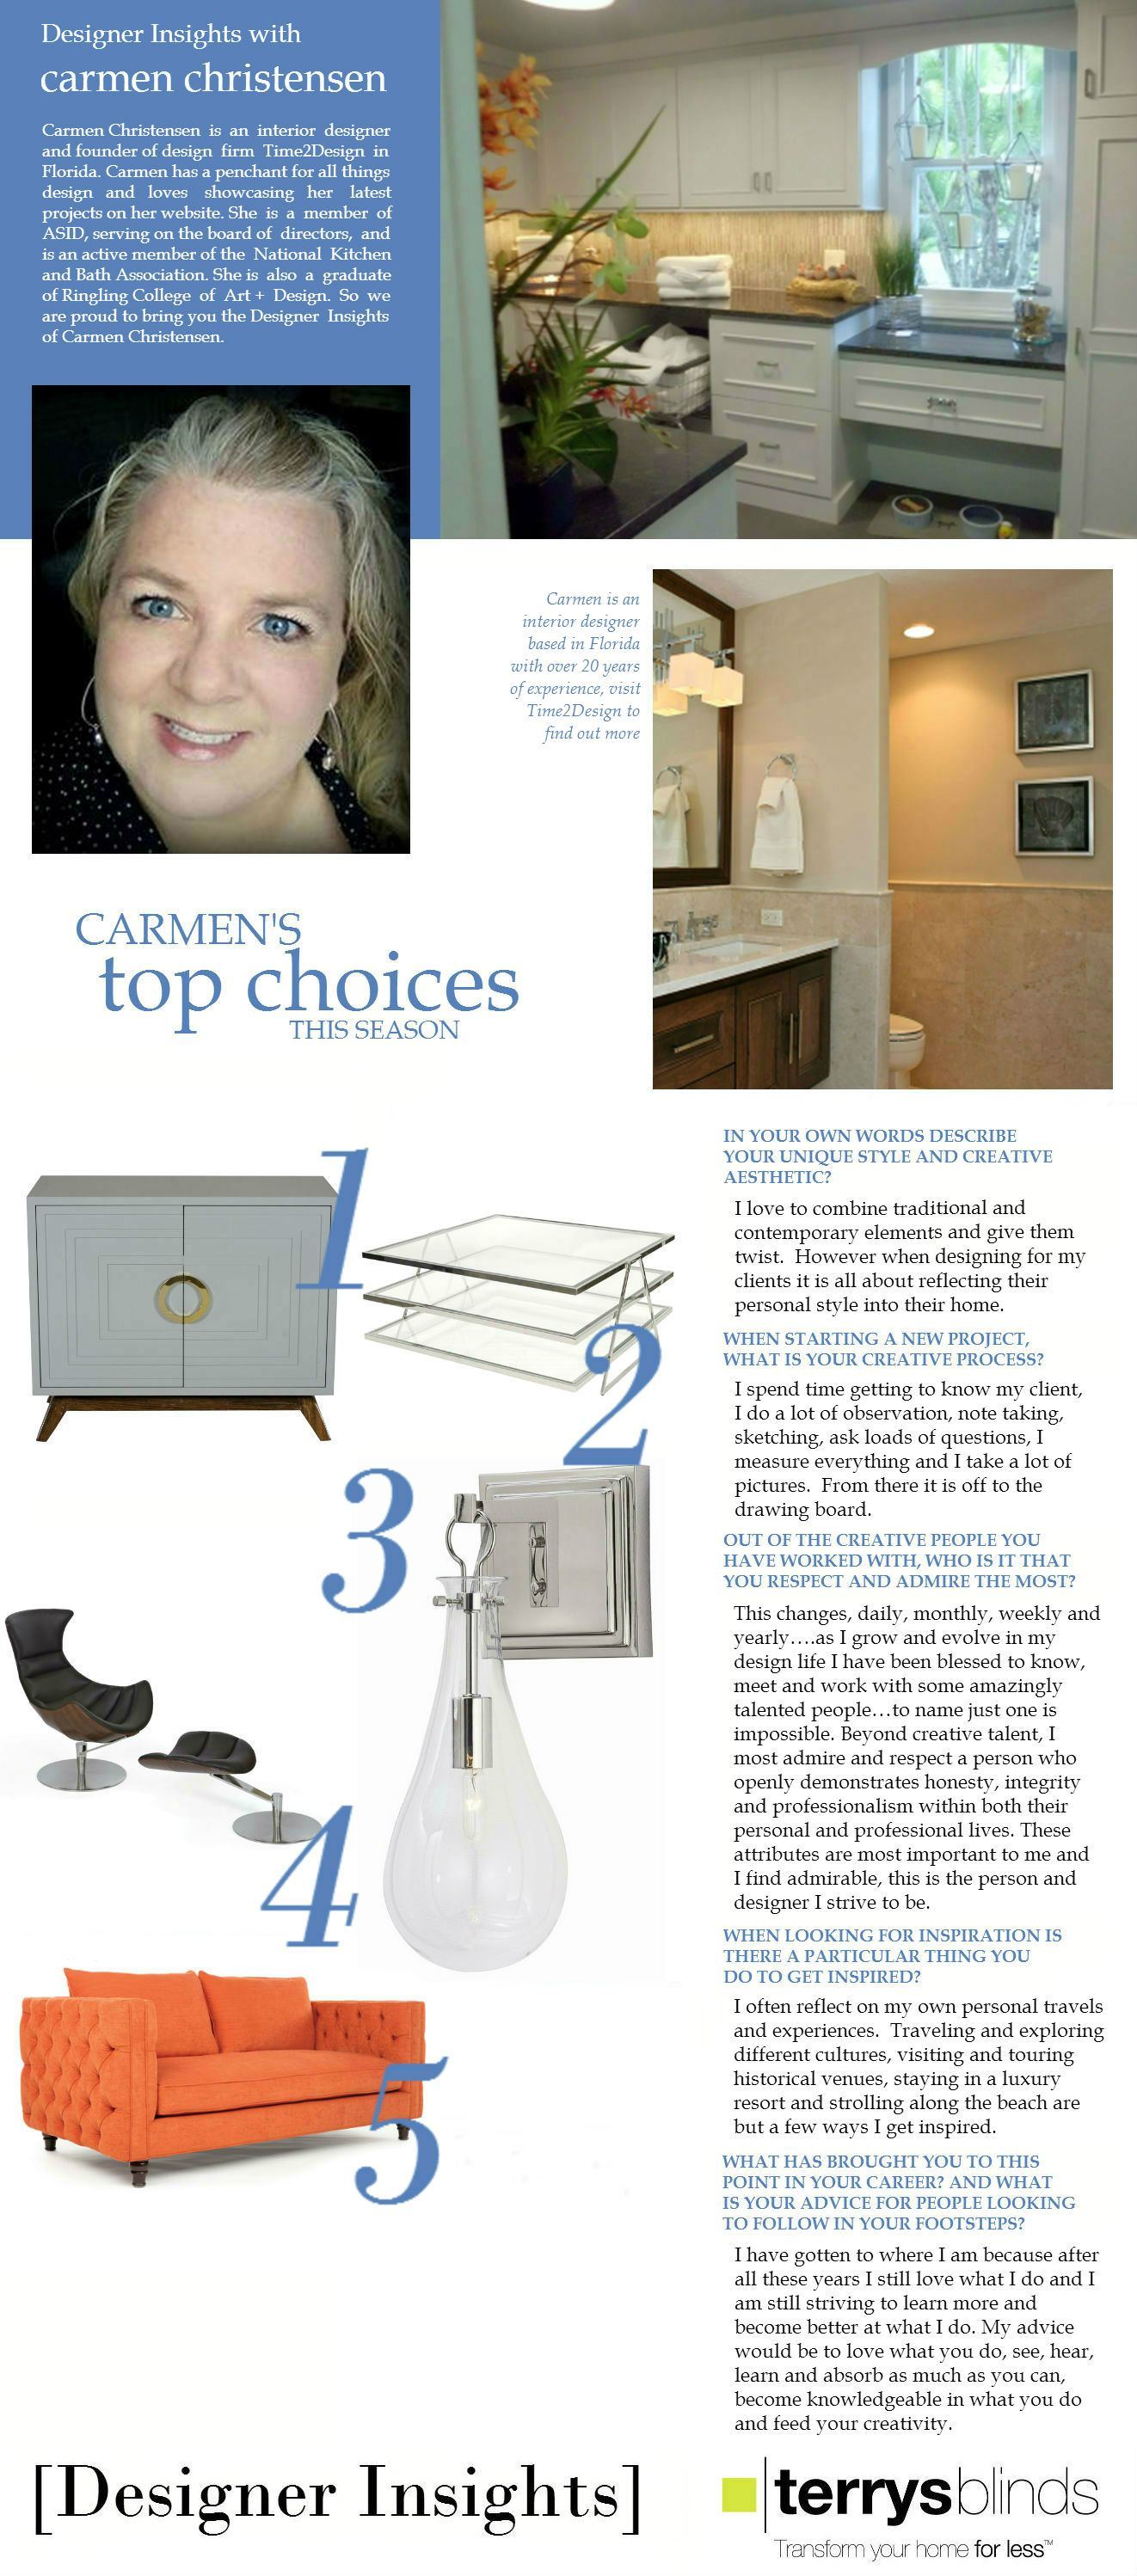 Designer Insights - Carmen Christensen